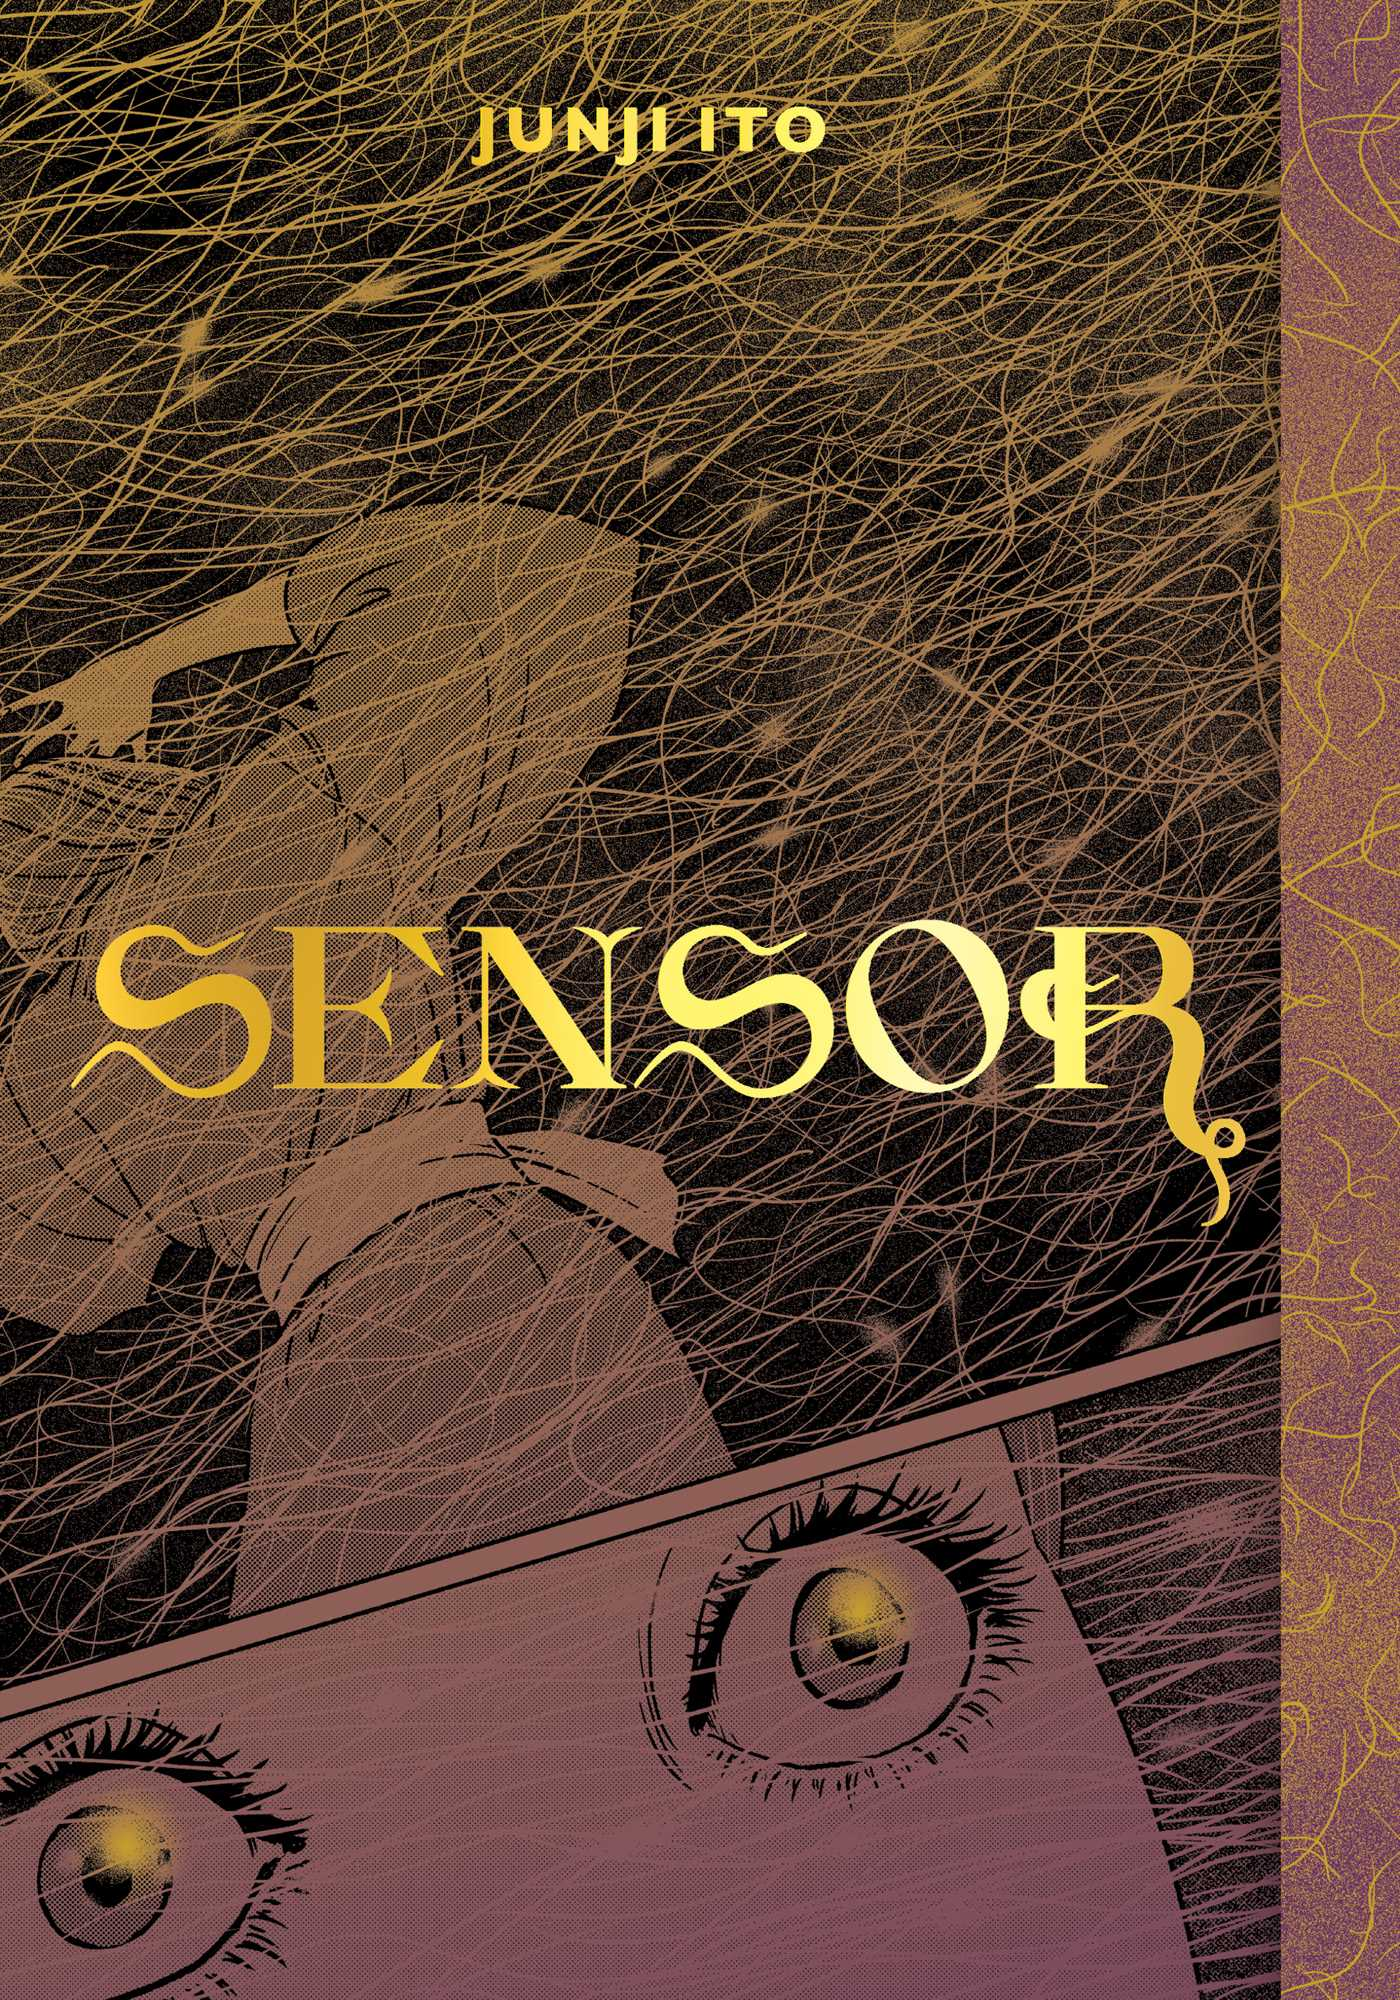 A woman cowers, eyes frightened, at the center of a mass of golden hairs, on the cover of Sensor.